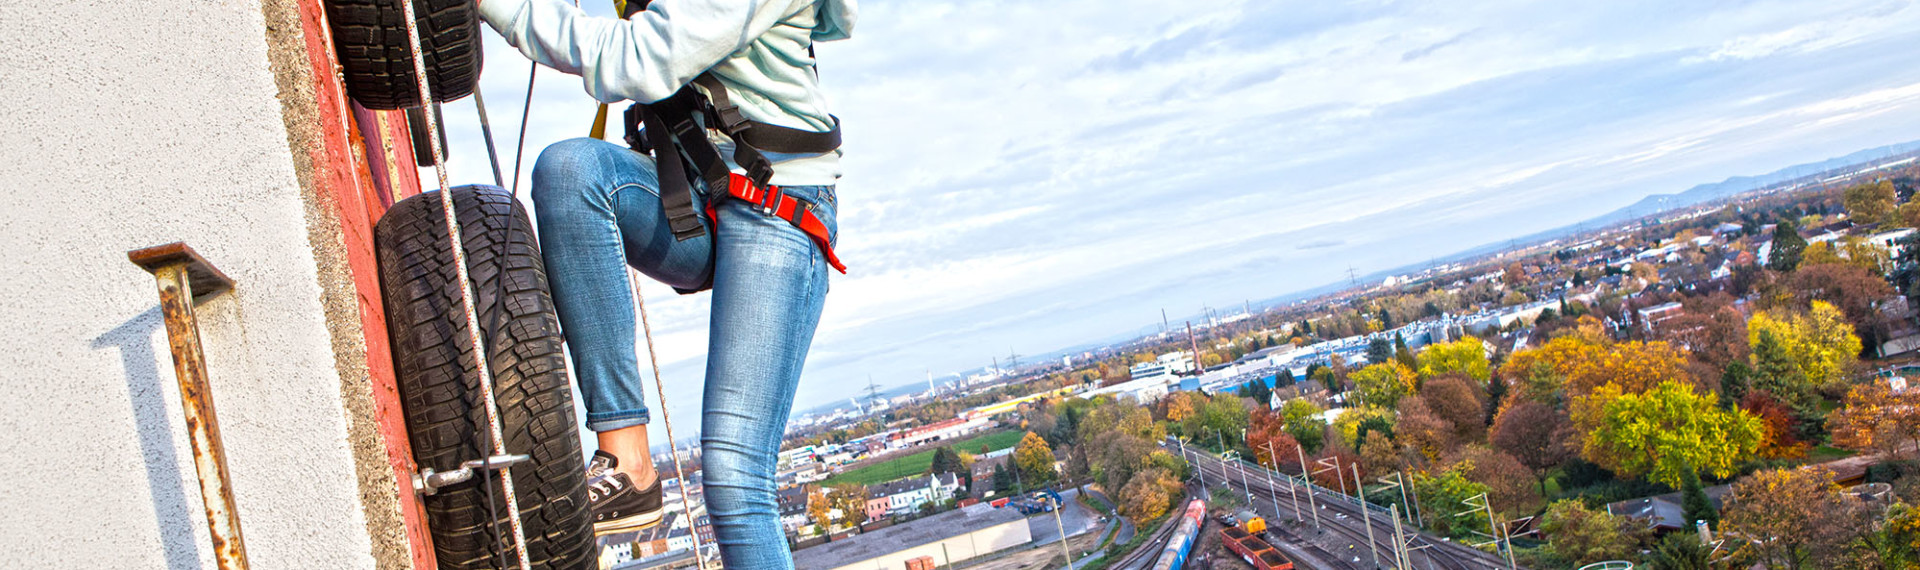 Cologne Climbing Wall - Via Ferrata image